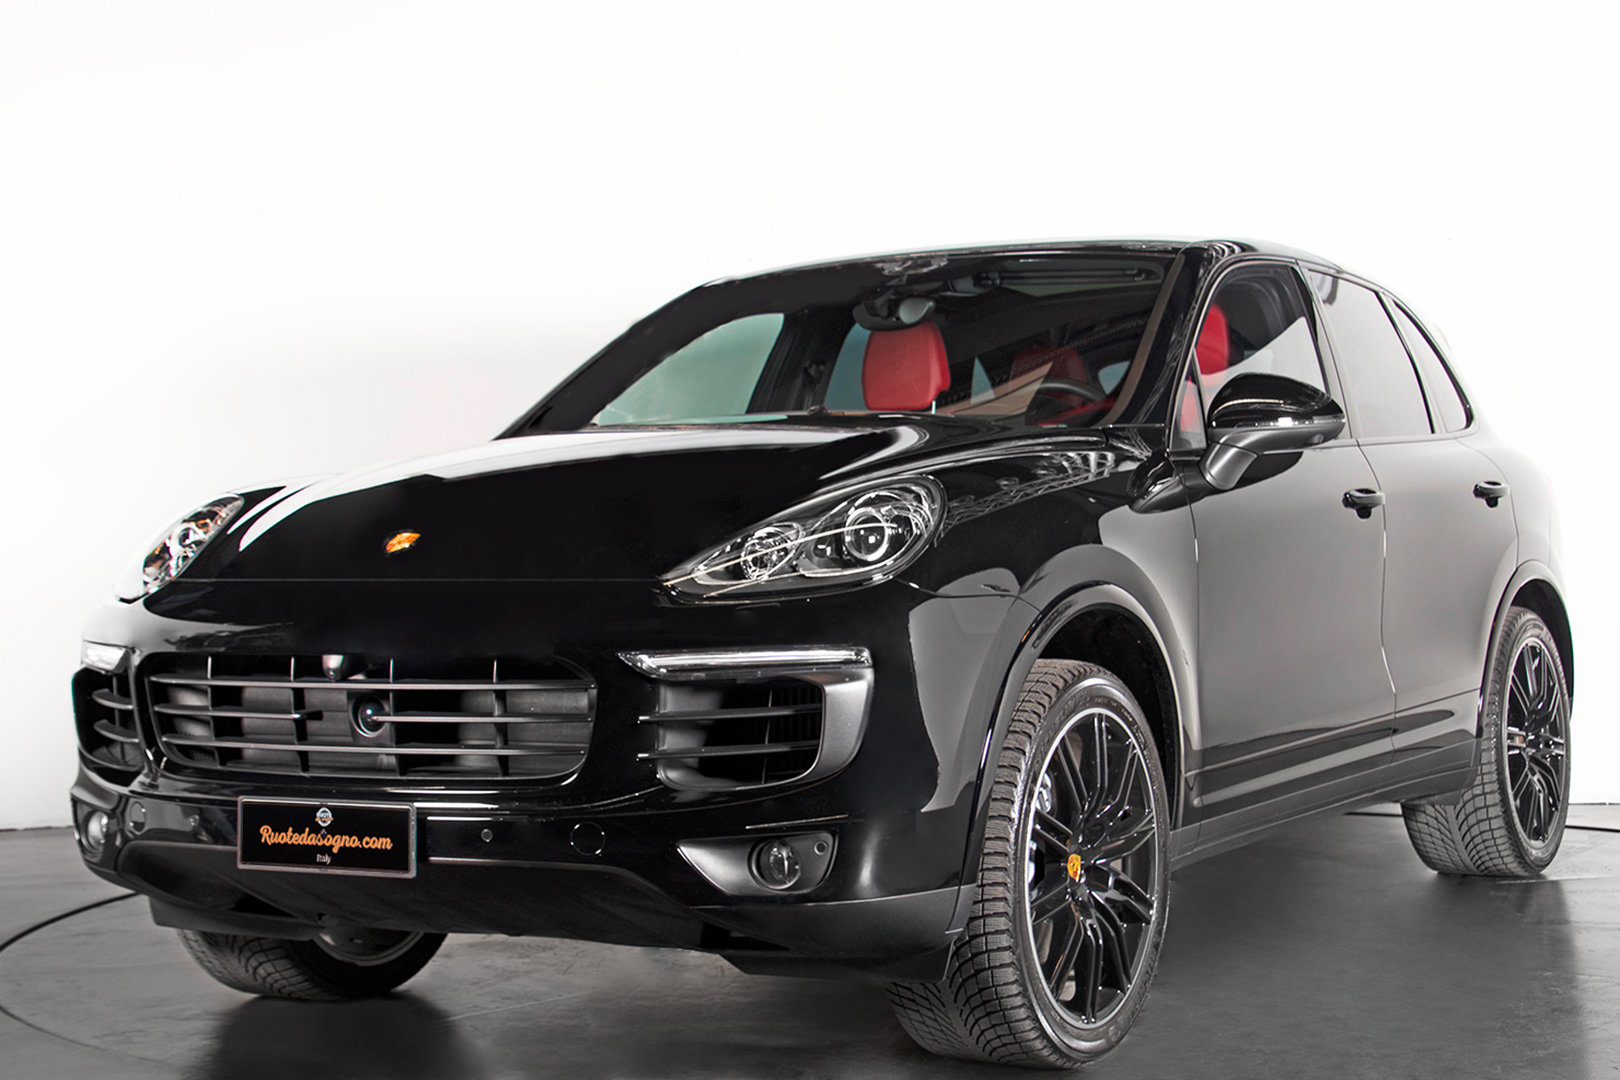 2017 PORSCHE CAYENNE S DIESEL 4.1 For Sale (picture 1 of 11)